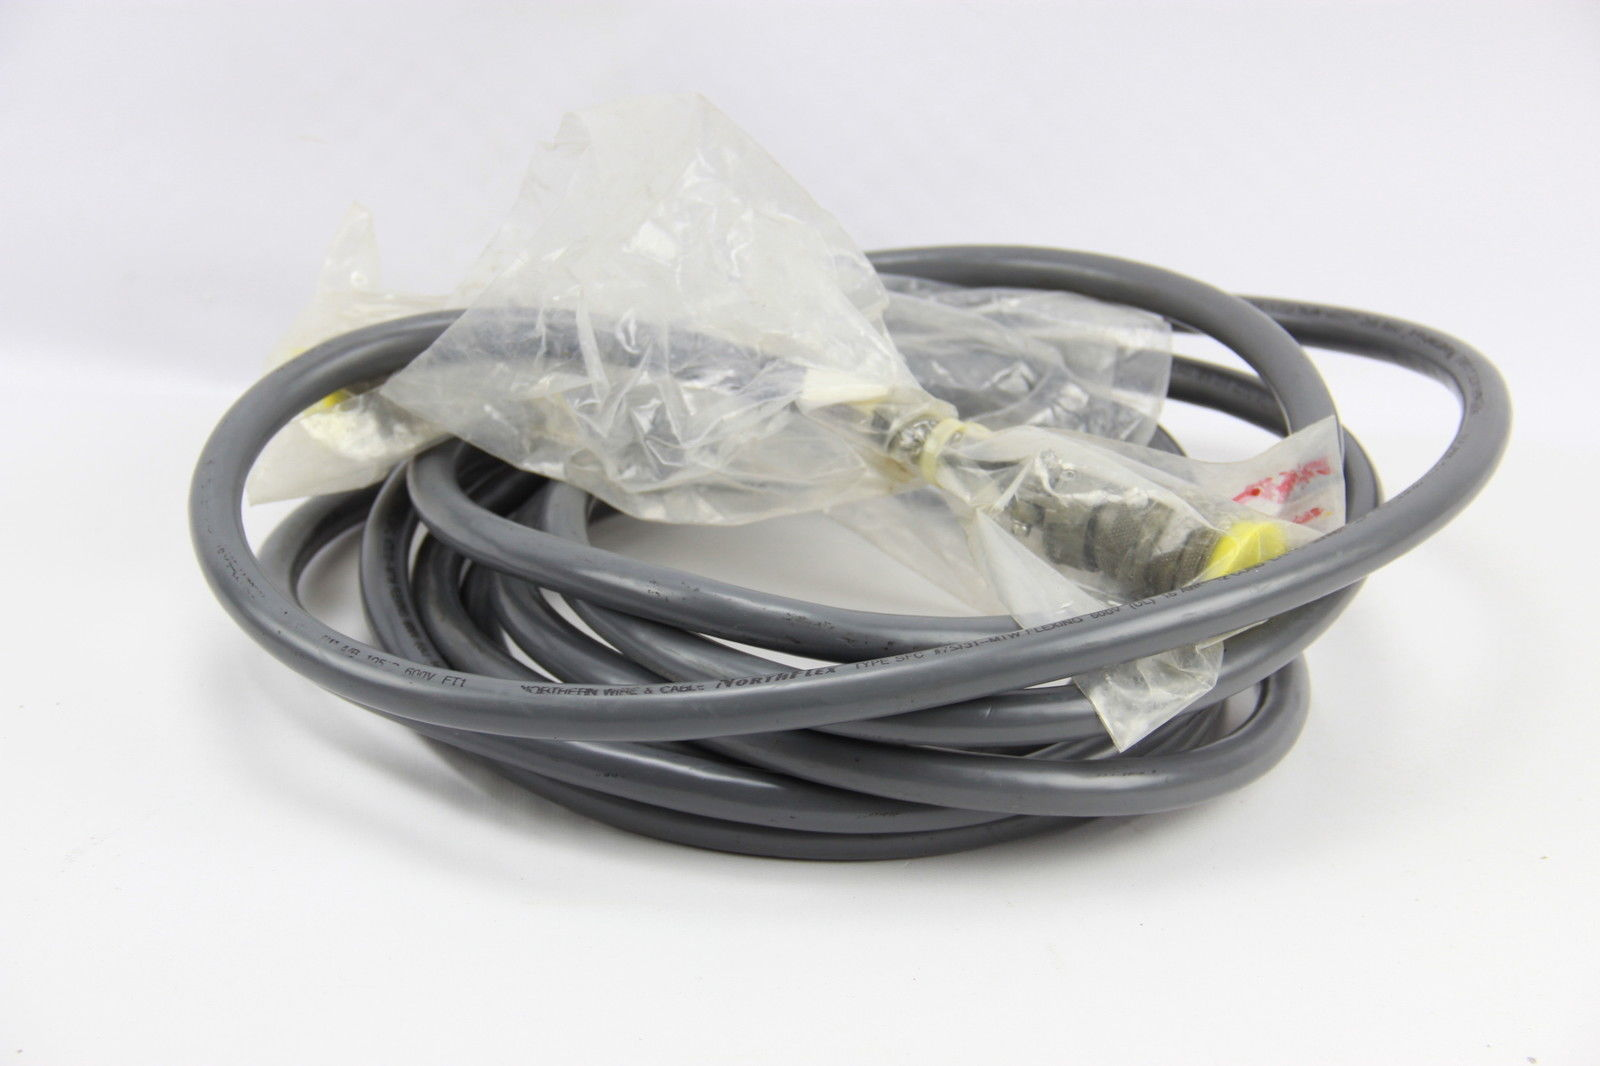 Northern Wire Northflex E76329-LL79301 Cable 600V 16AWG MTW Pendant ...